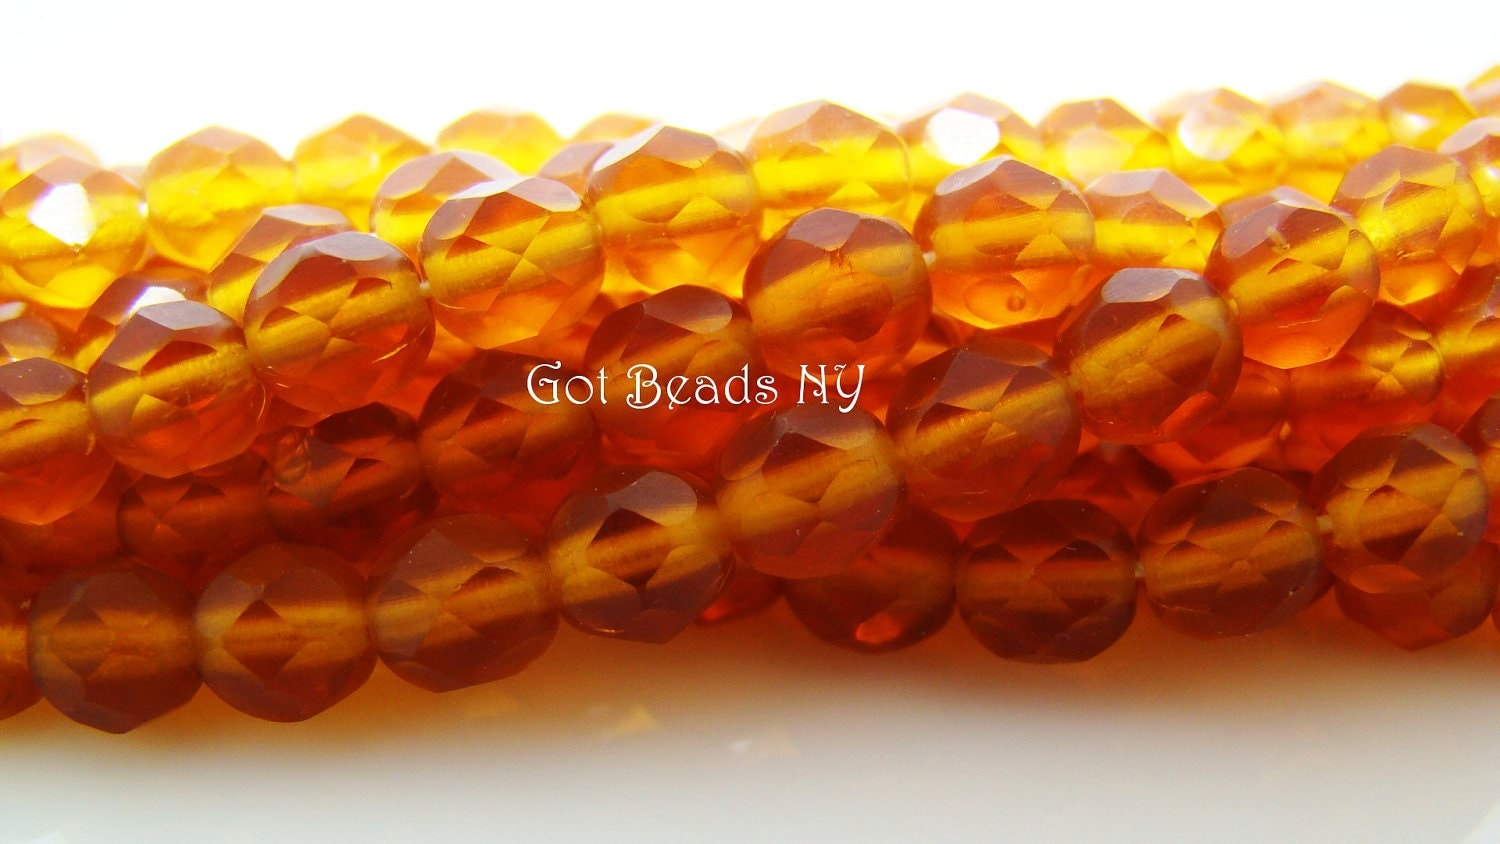 Fire polished beads, 6mm Matte smoky topaz Czech fire polished crystals.  1 - 6inch strand (25 pieces), Glass beads - GotBeadsNY